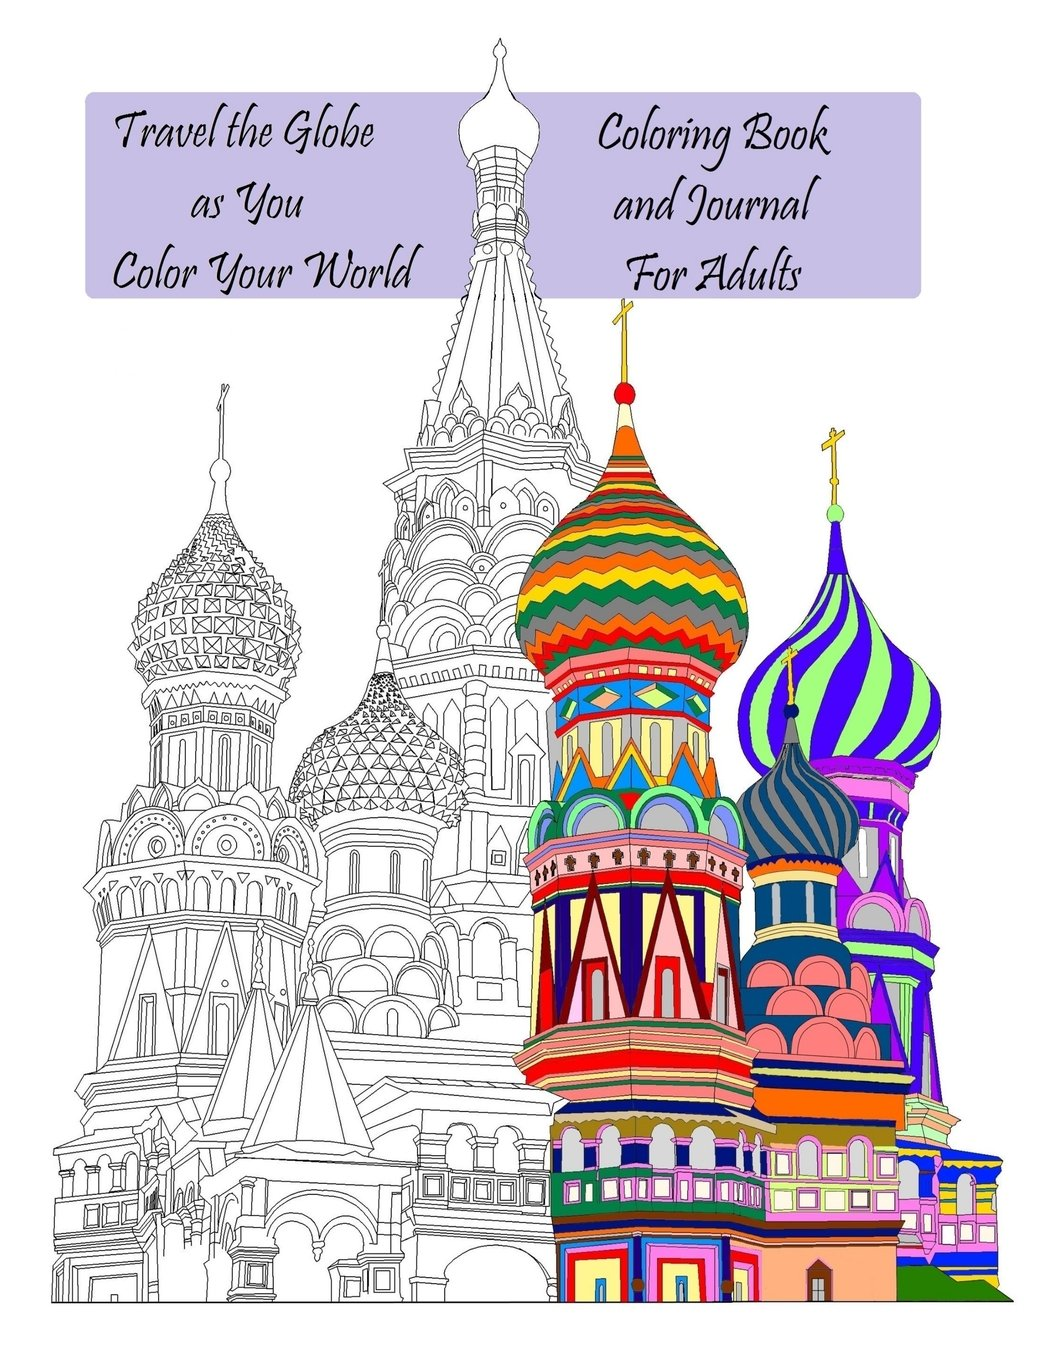 Amazon.com: Travel the Globe as You Color Your World: Coloring ...